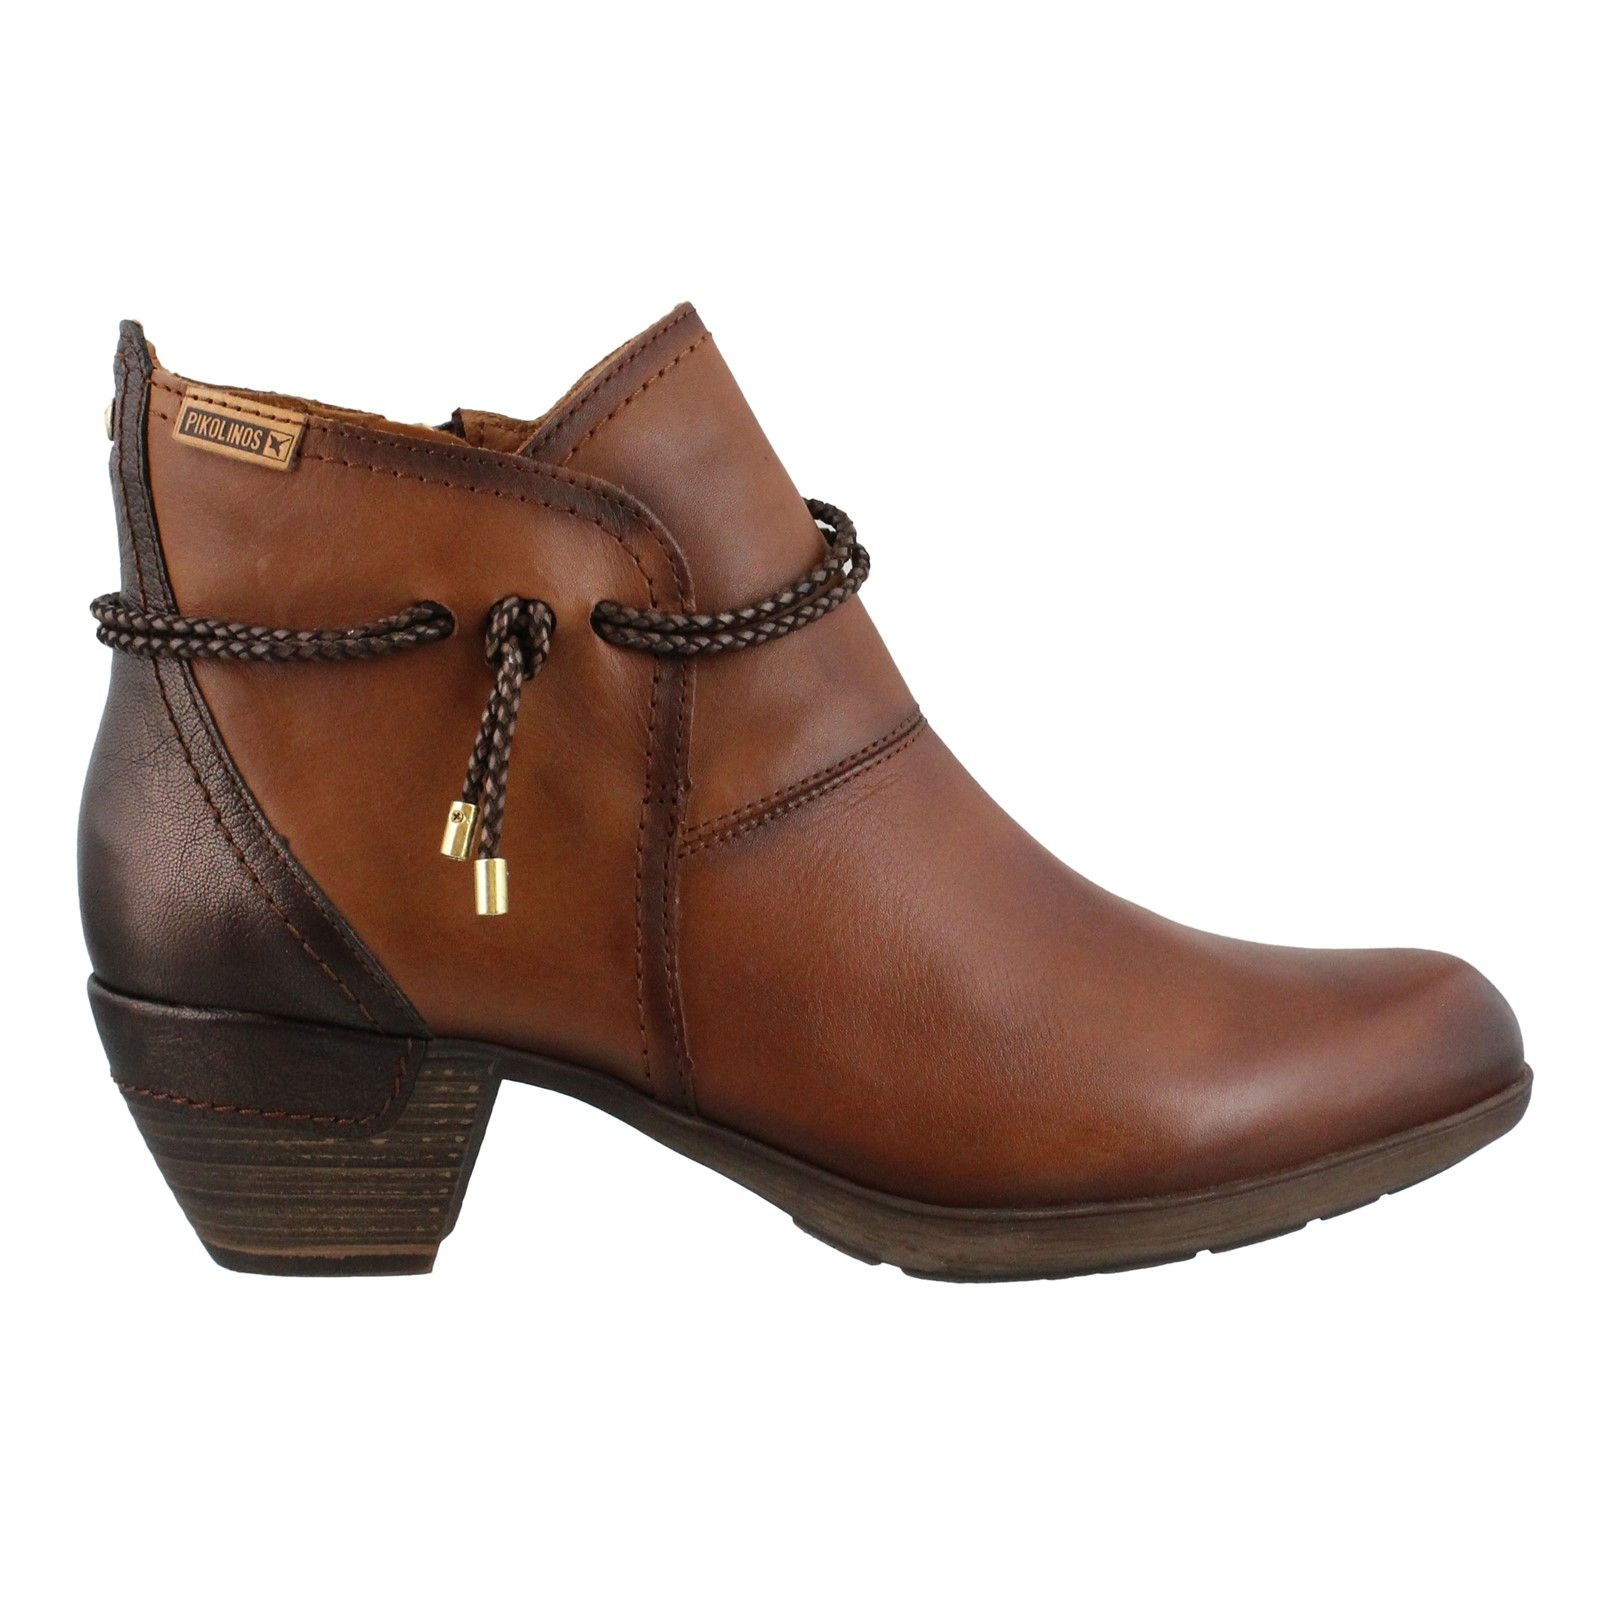 Women's Pikolinos, Rotterdam 9028775 Ankle Boots